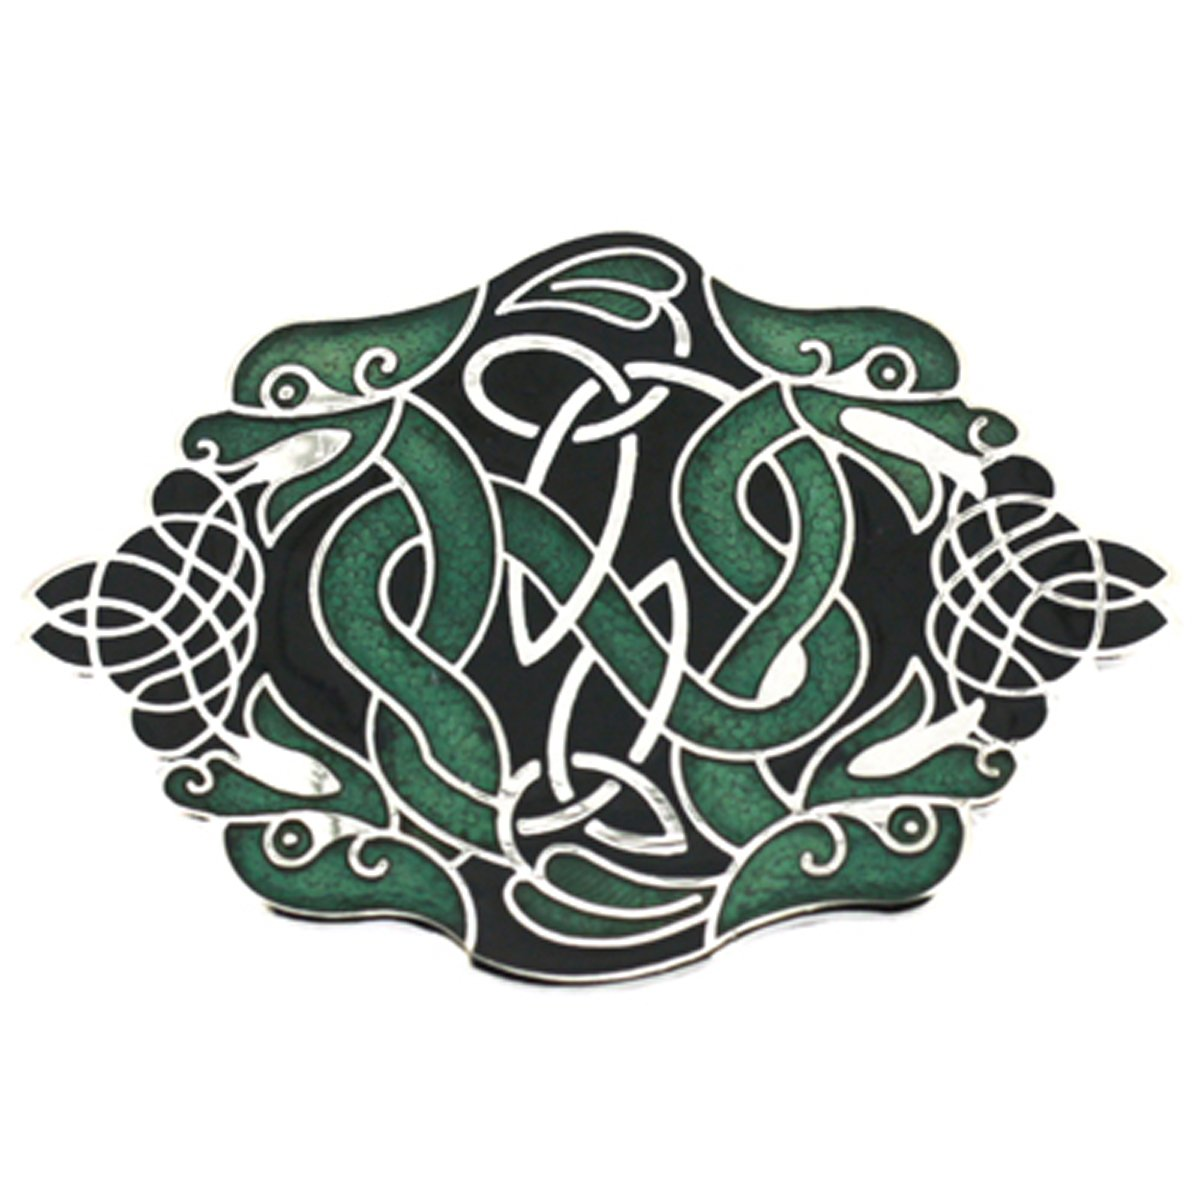 PYNK Jewellery Brooches Store Celtic Two Dragons Brooch Green Enamel and Silver 6980